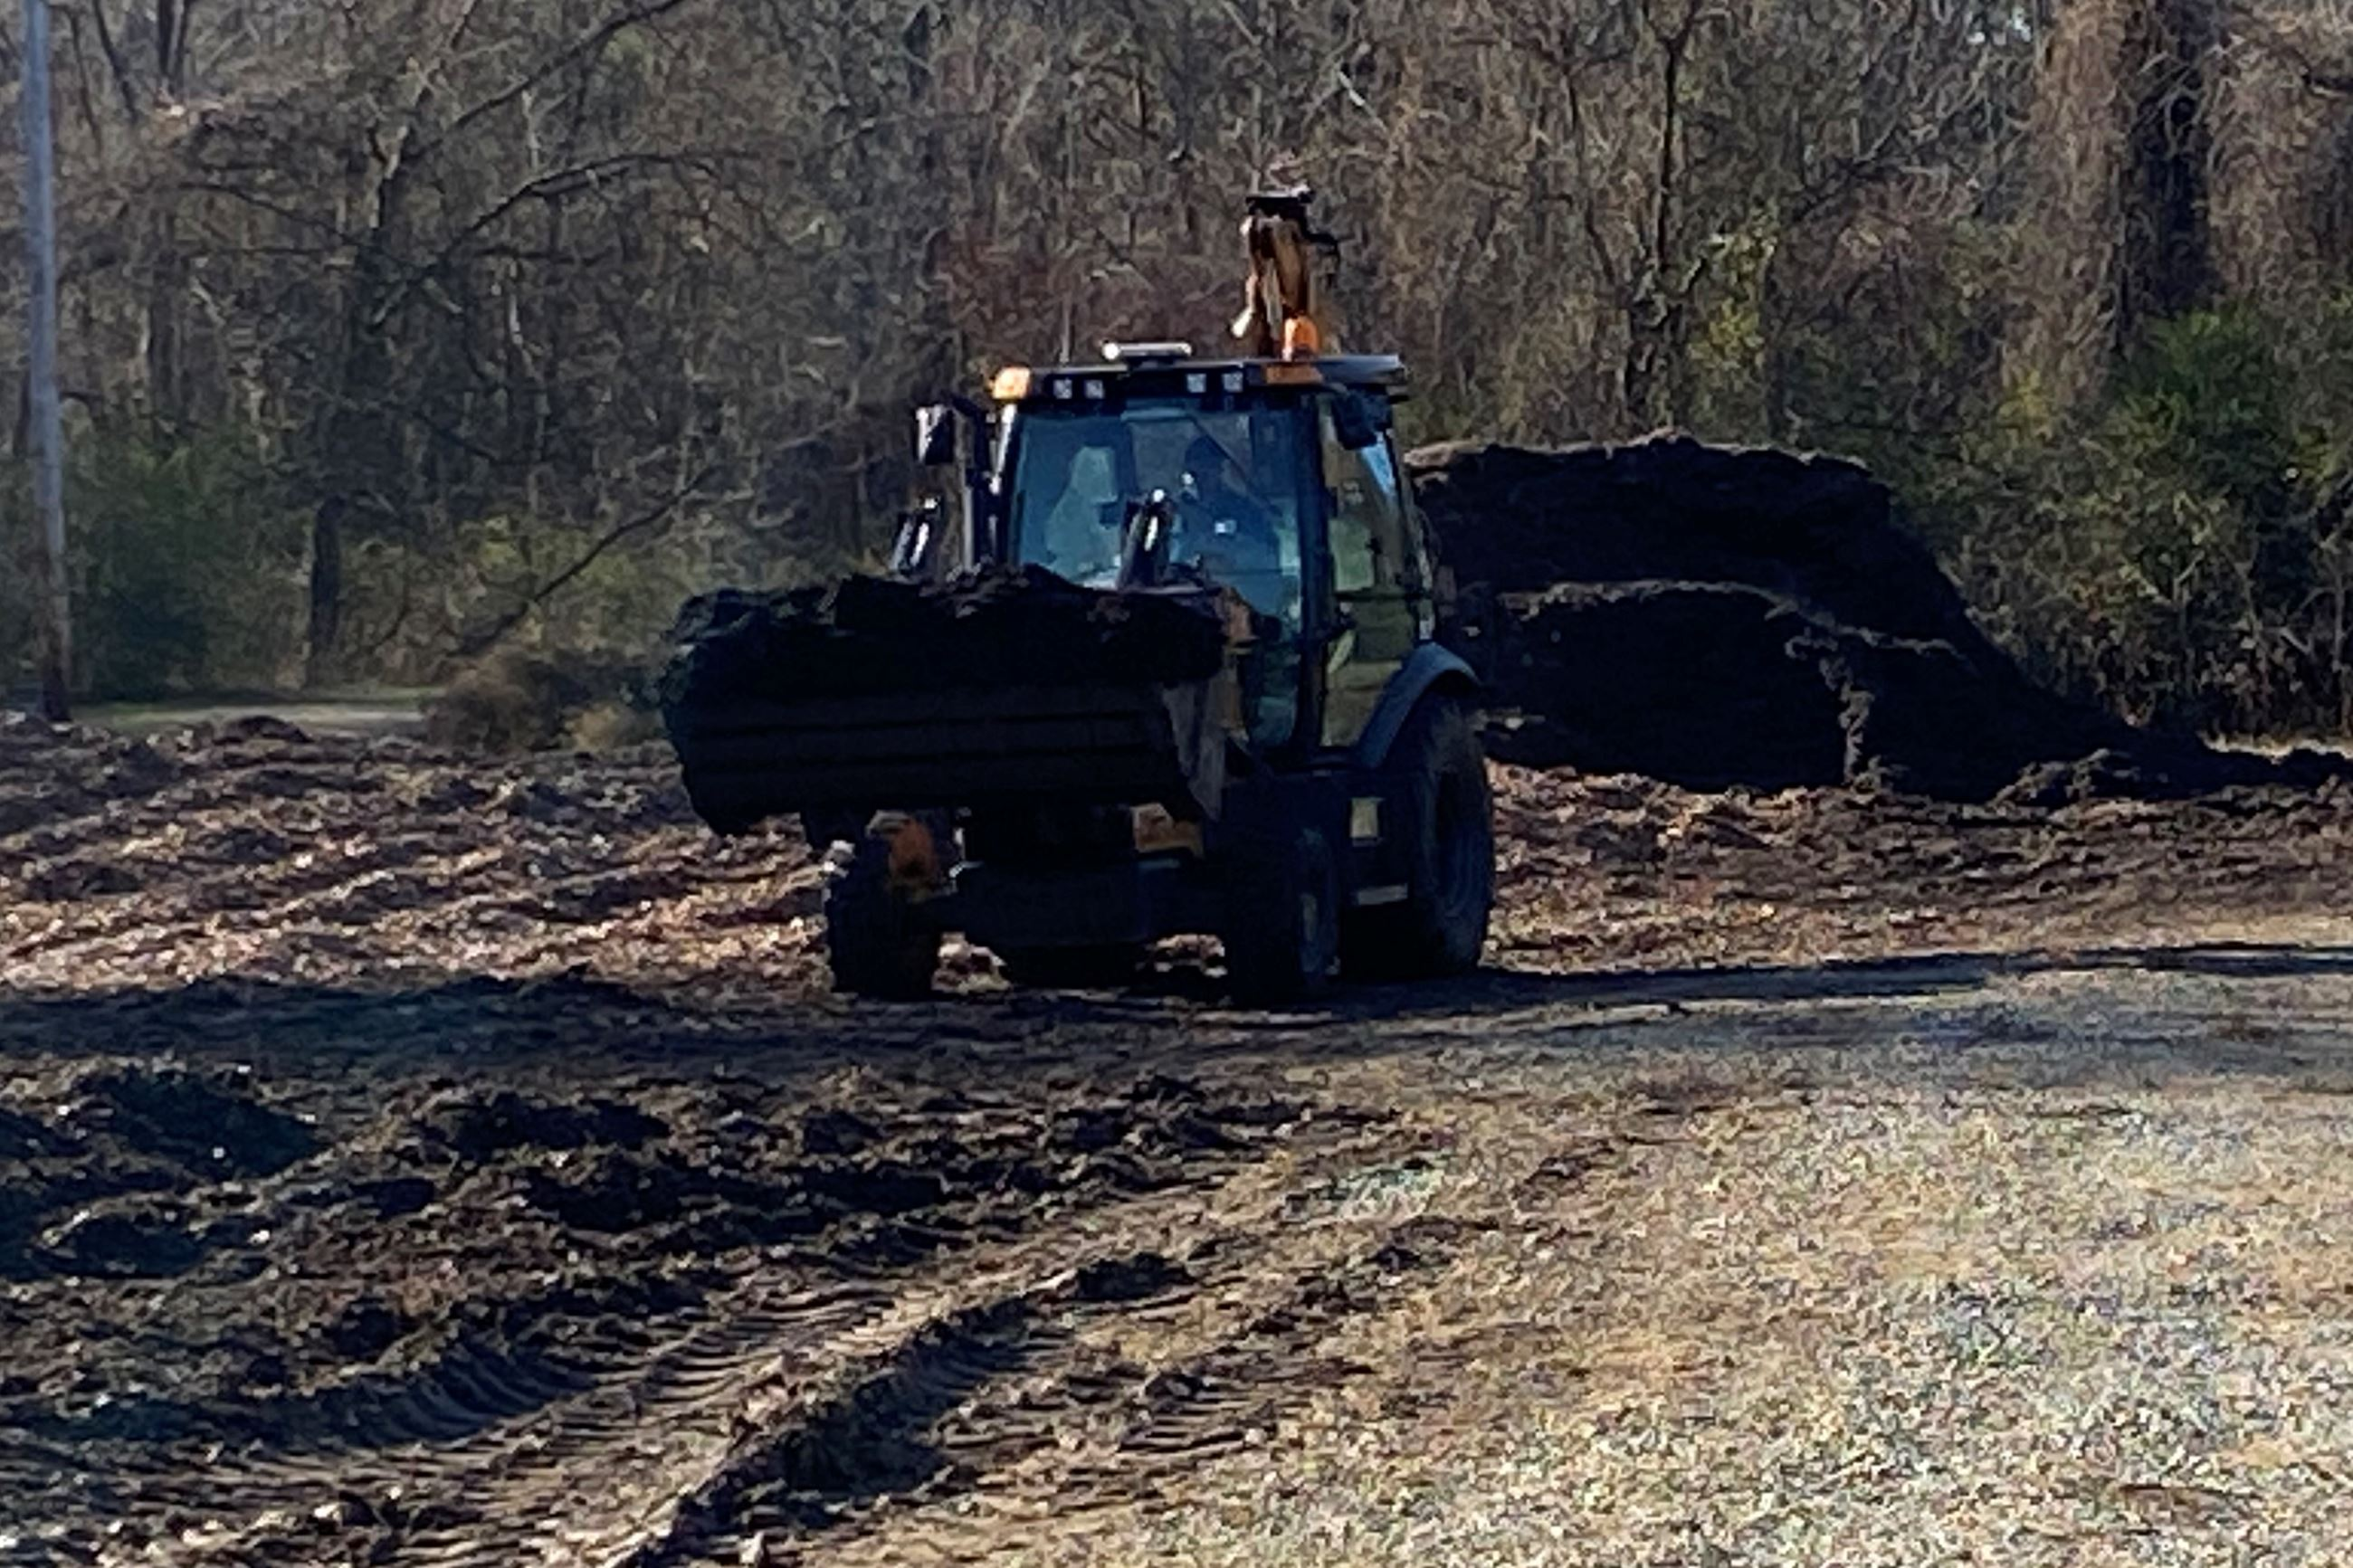 Leaf Compost Operations at Public Works Facility